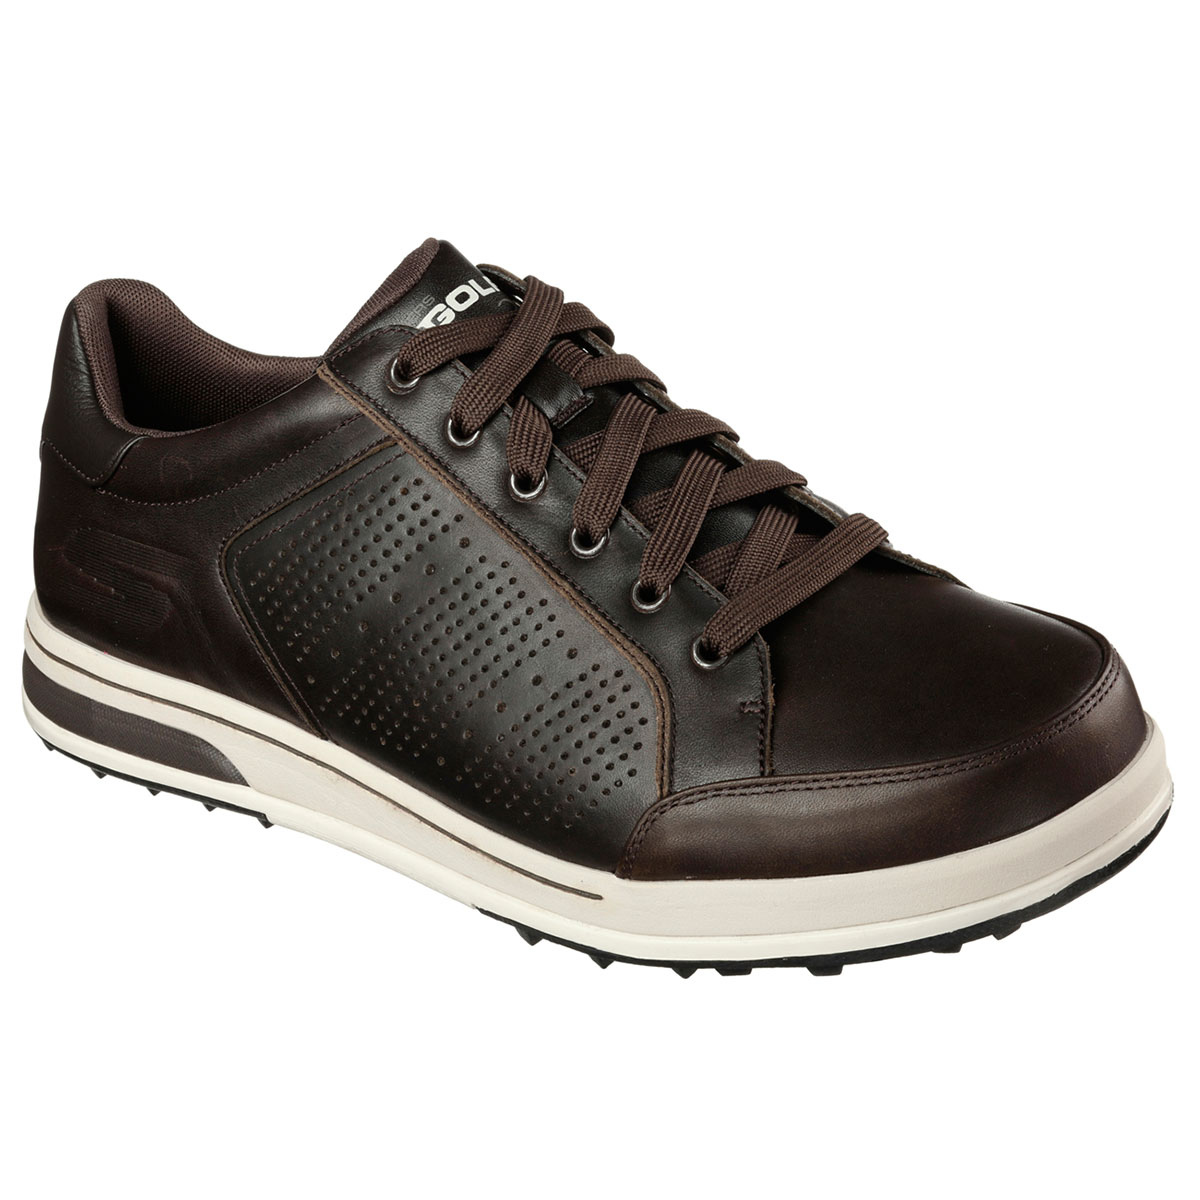 Skechers-Golf-2017-Mens-GO-Golf-Drive-2-LX-Golf-Shoes-Water-Resistant-Breathable